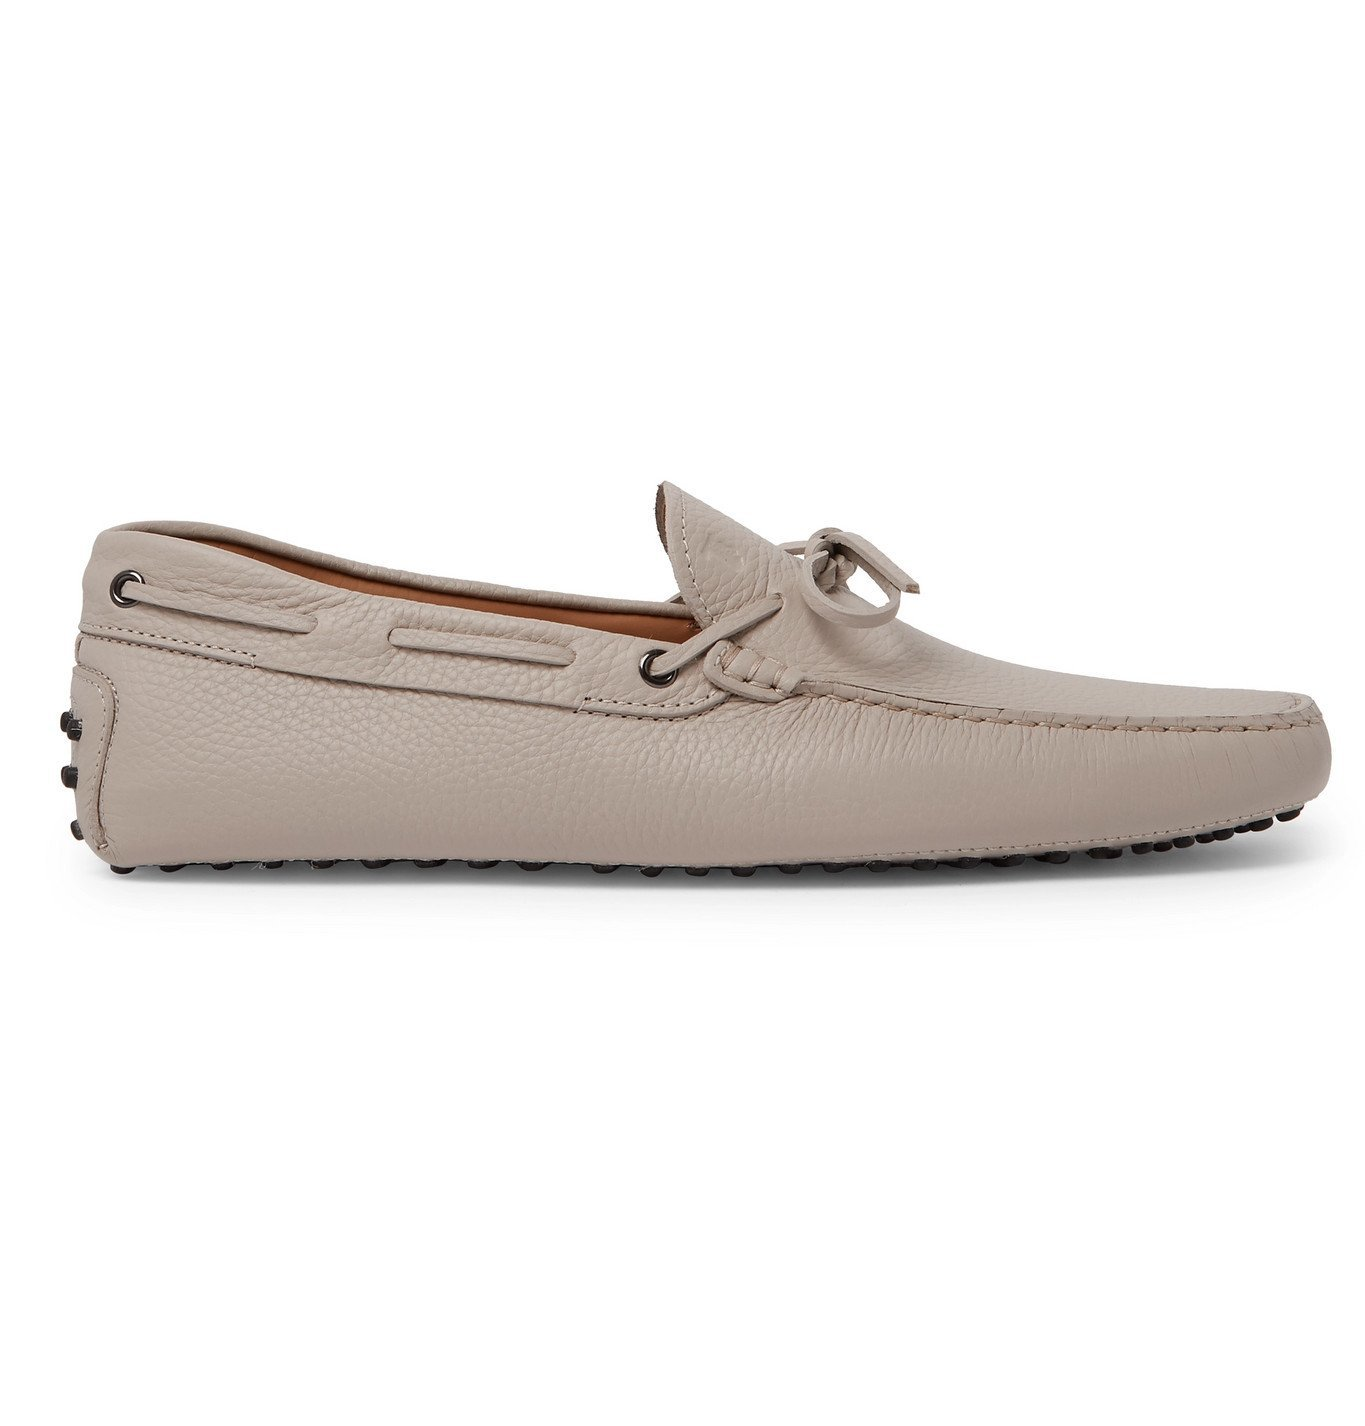 Tod's - Gommino Full-Grain Leather Driving Shoes - Neutrals